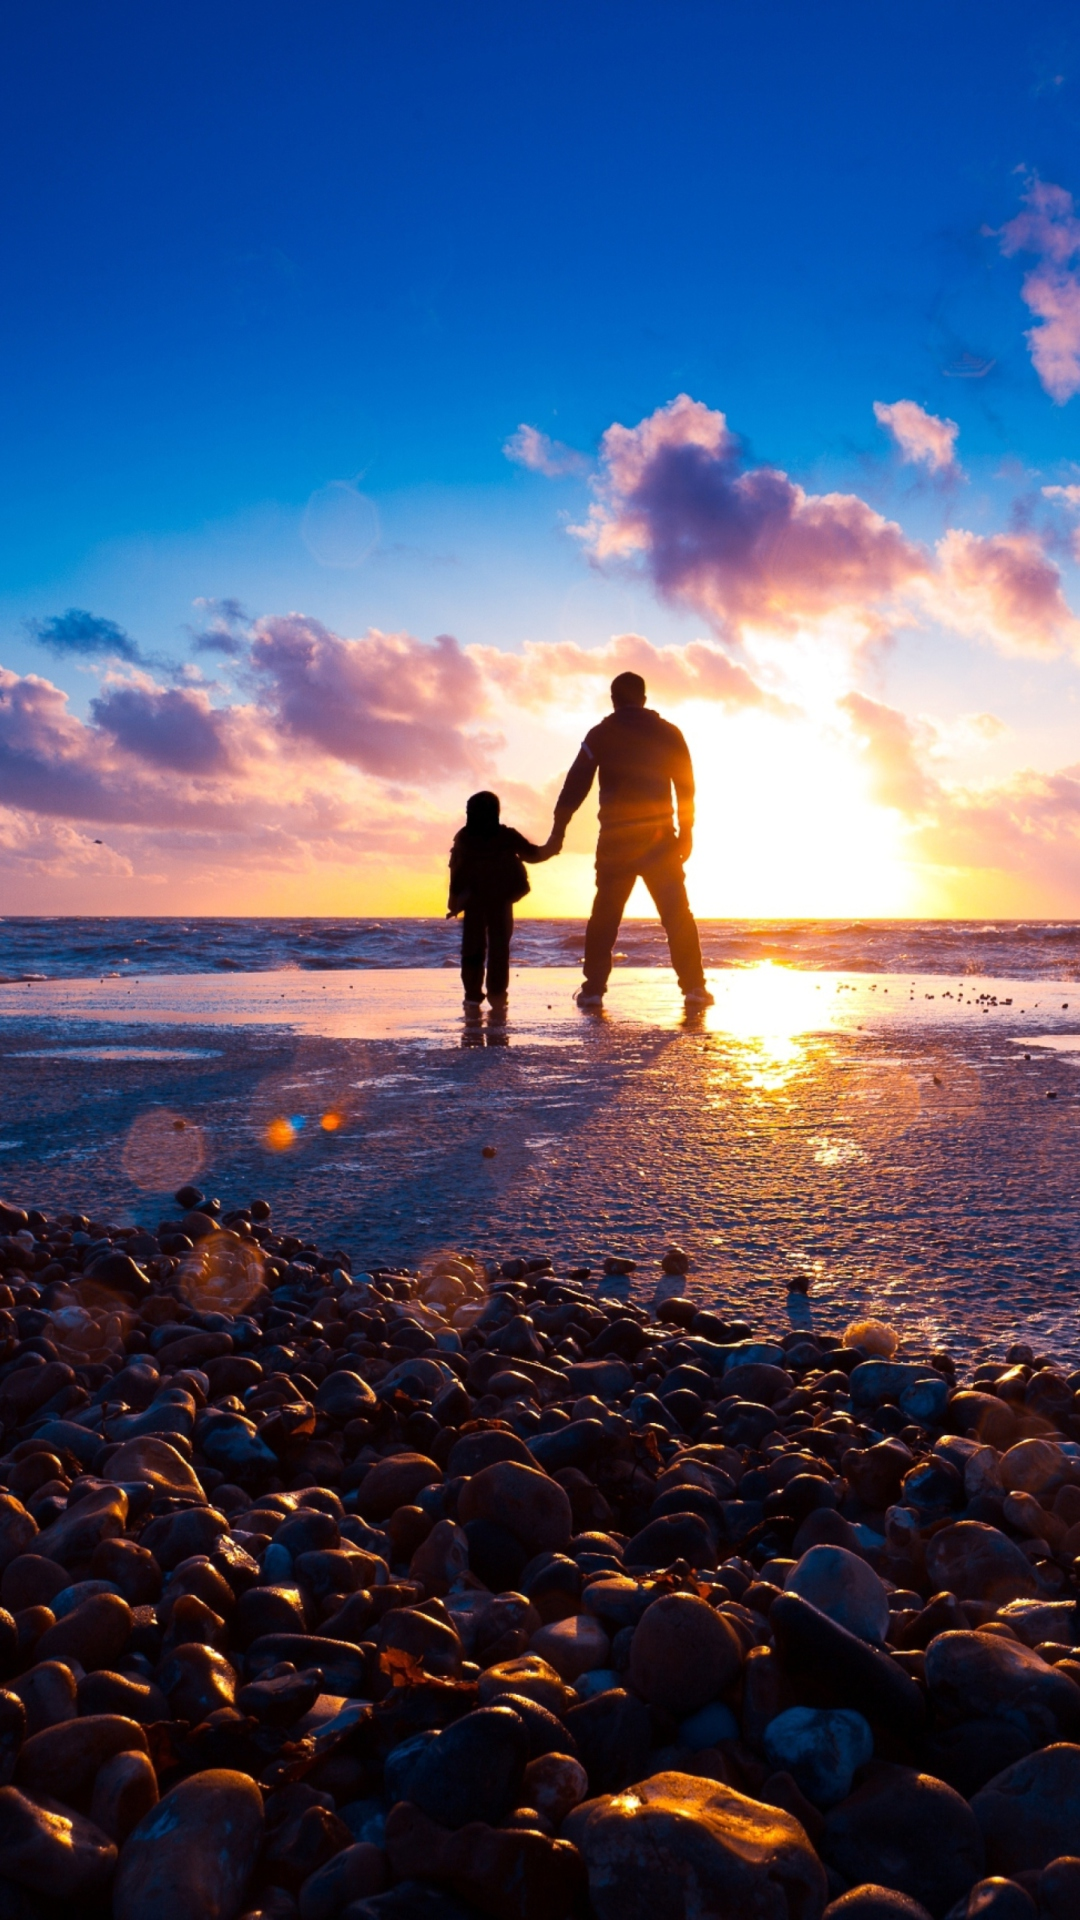 All Bollywood Girl Wallpaper Father And Son On Beach At Sunset Wallpaper For 1080x1920